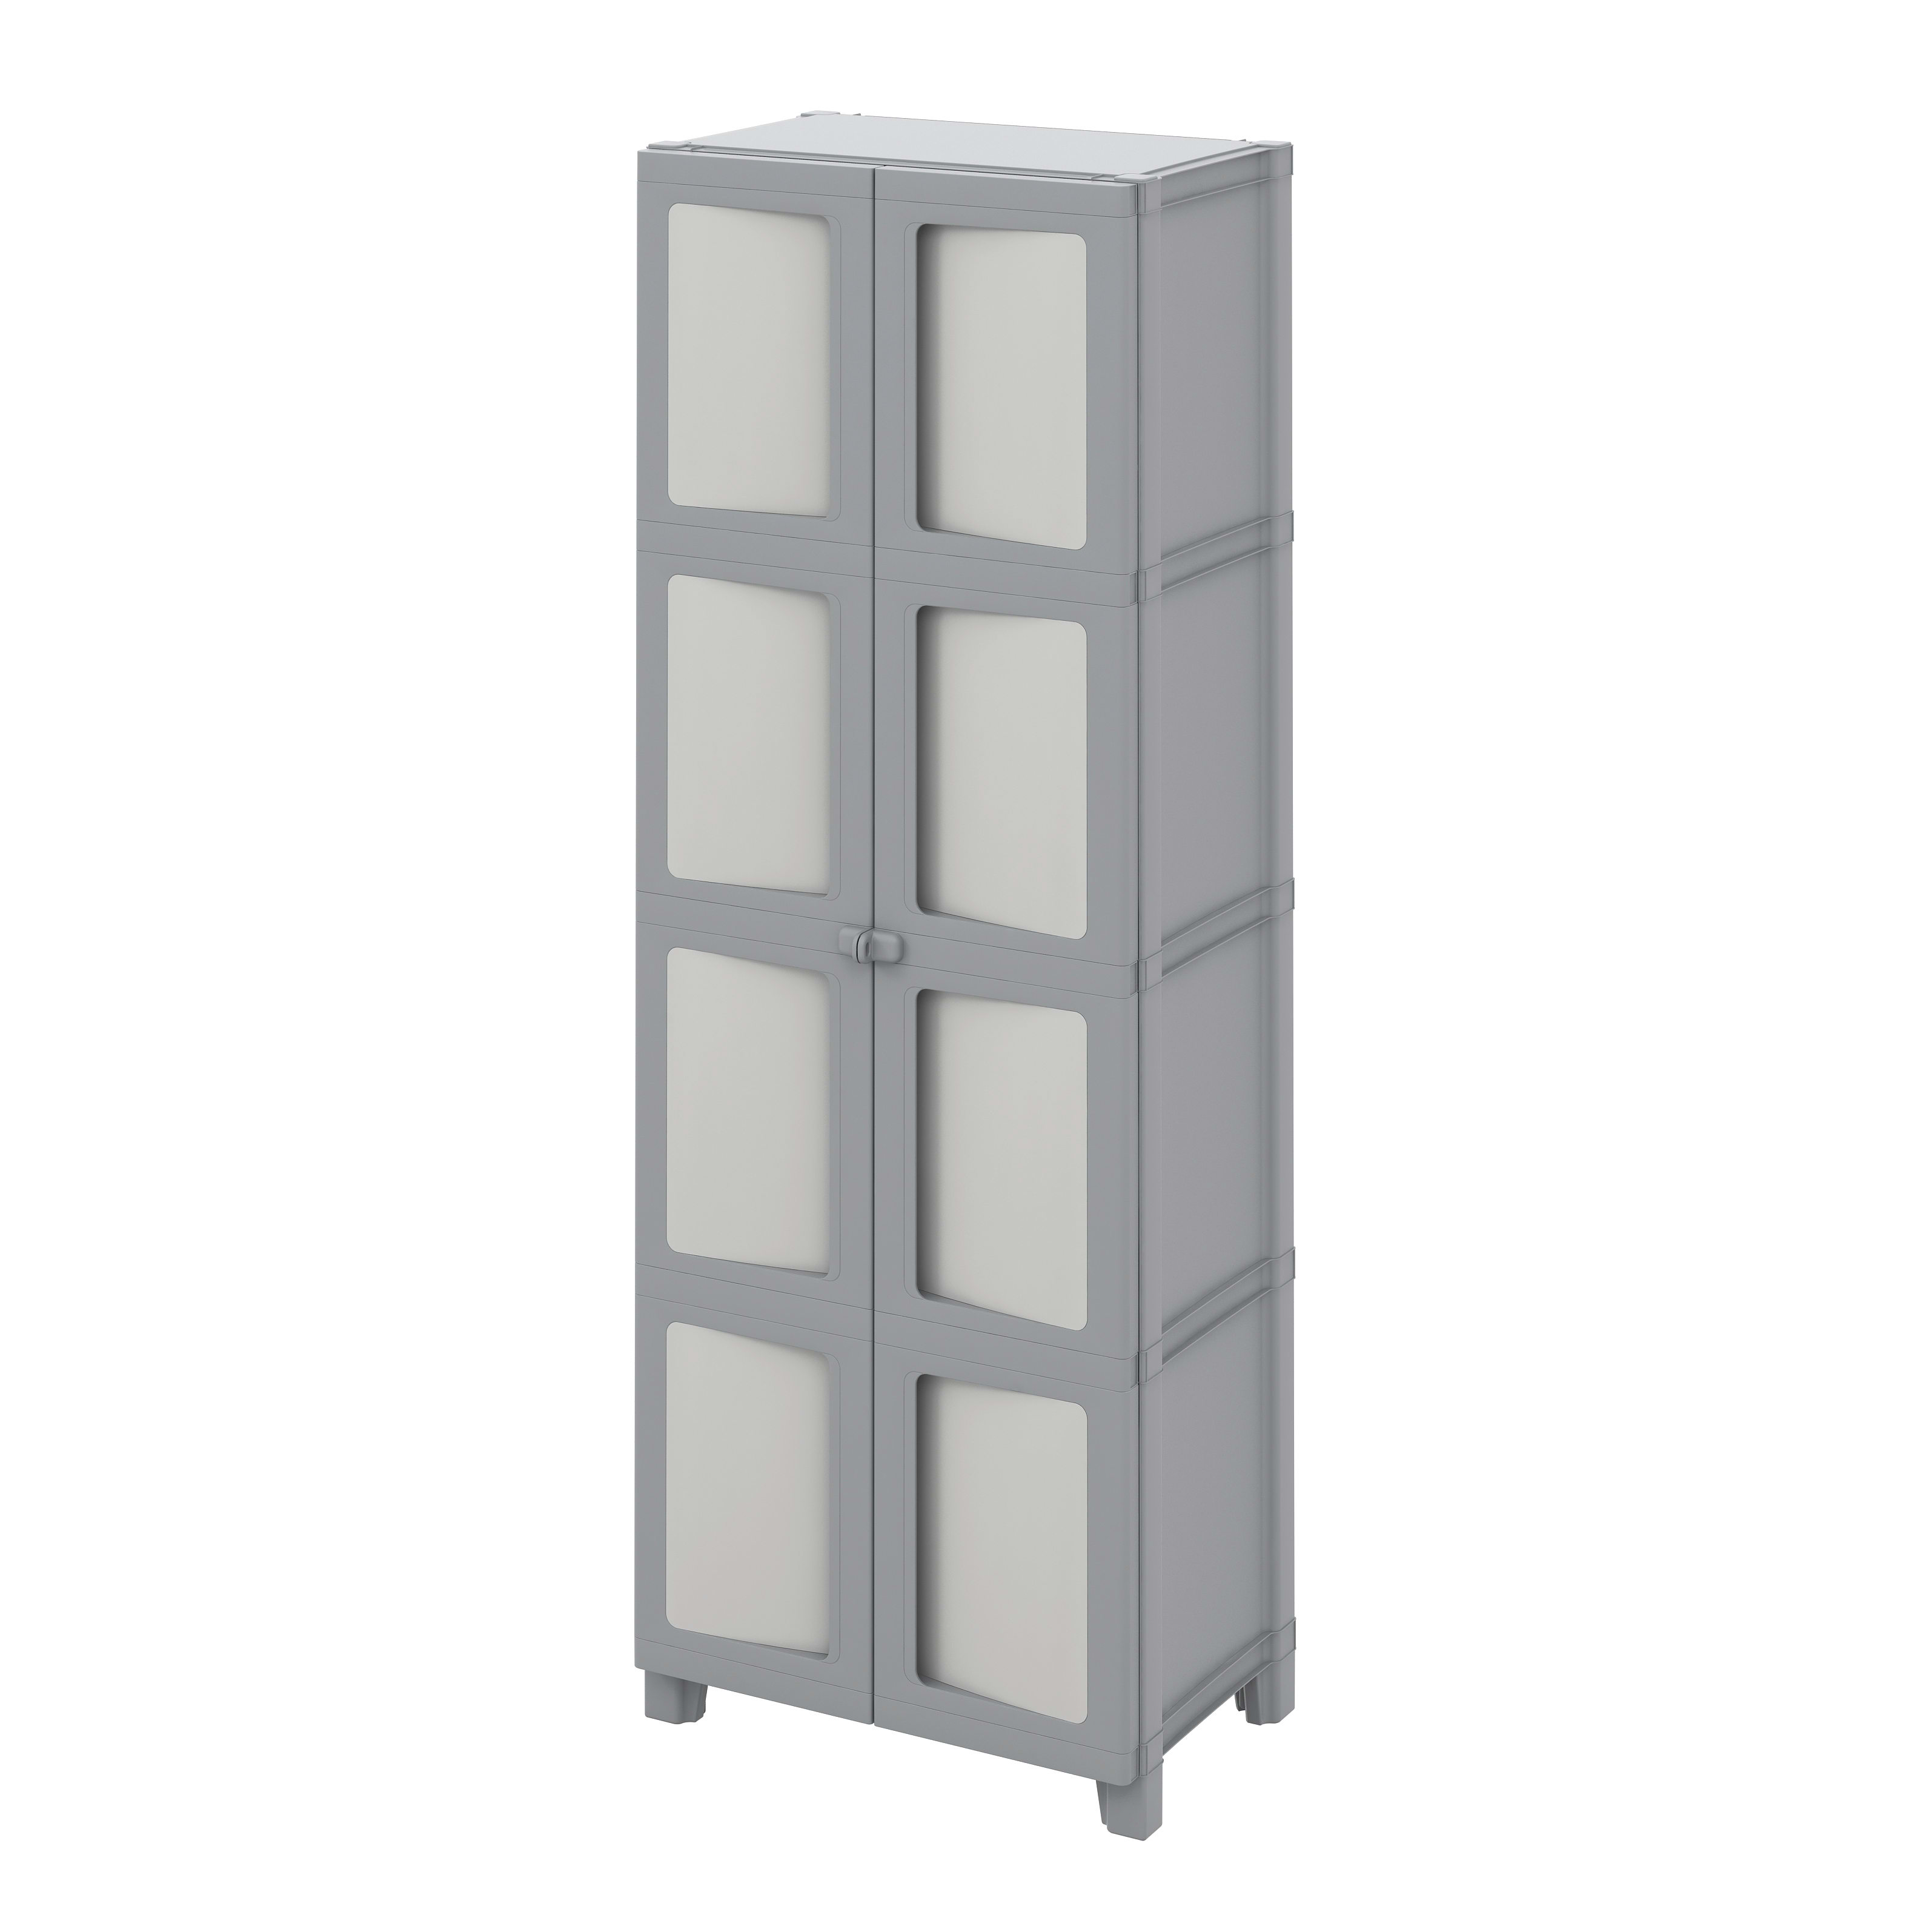 Armadio In Resina Spaceo.Armadio Modulize L 65 X P 40 X H 180 Cm Grigio Prezzo Online Leroy Merlin